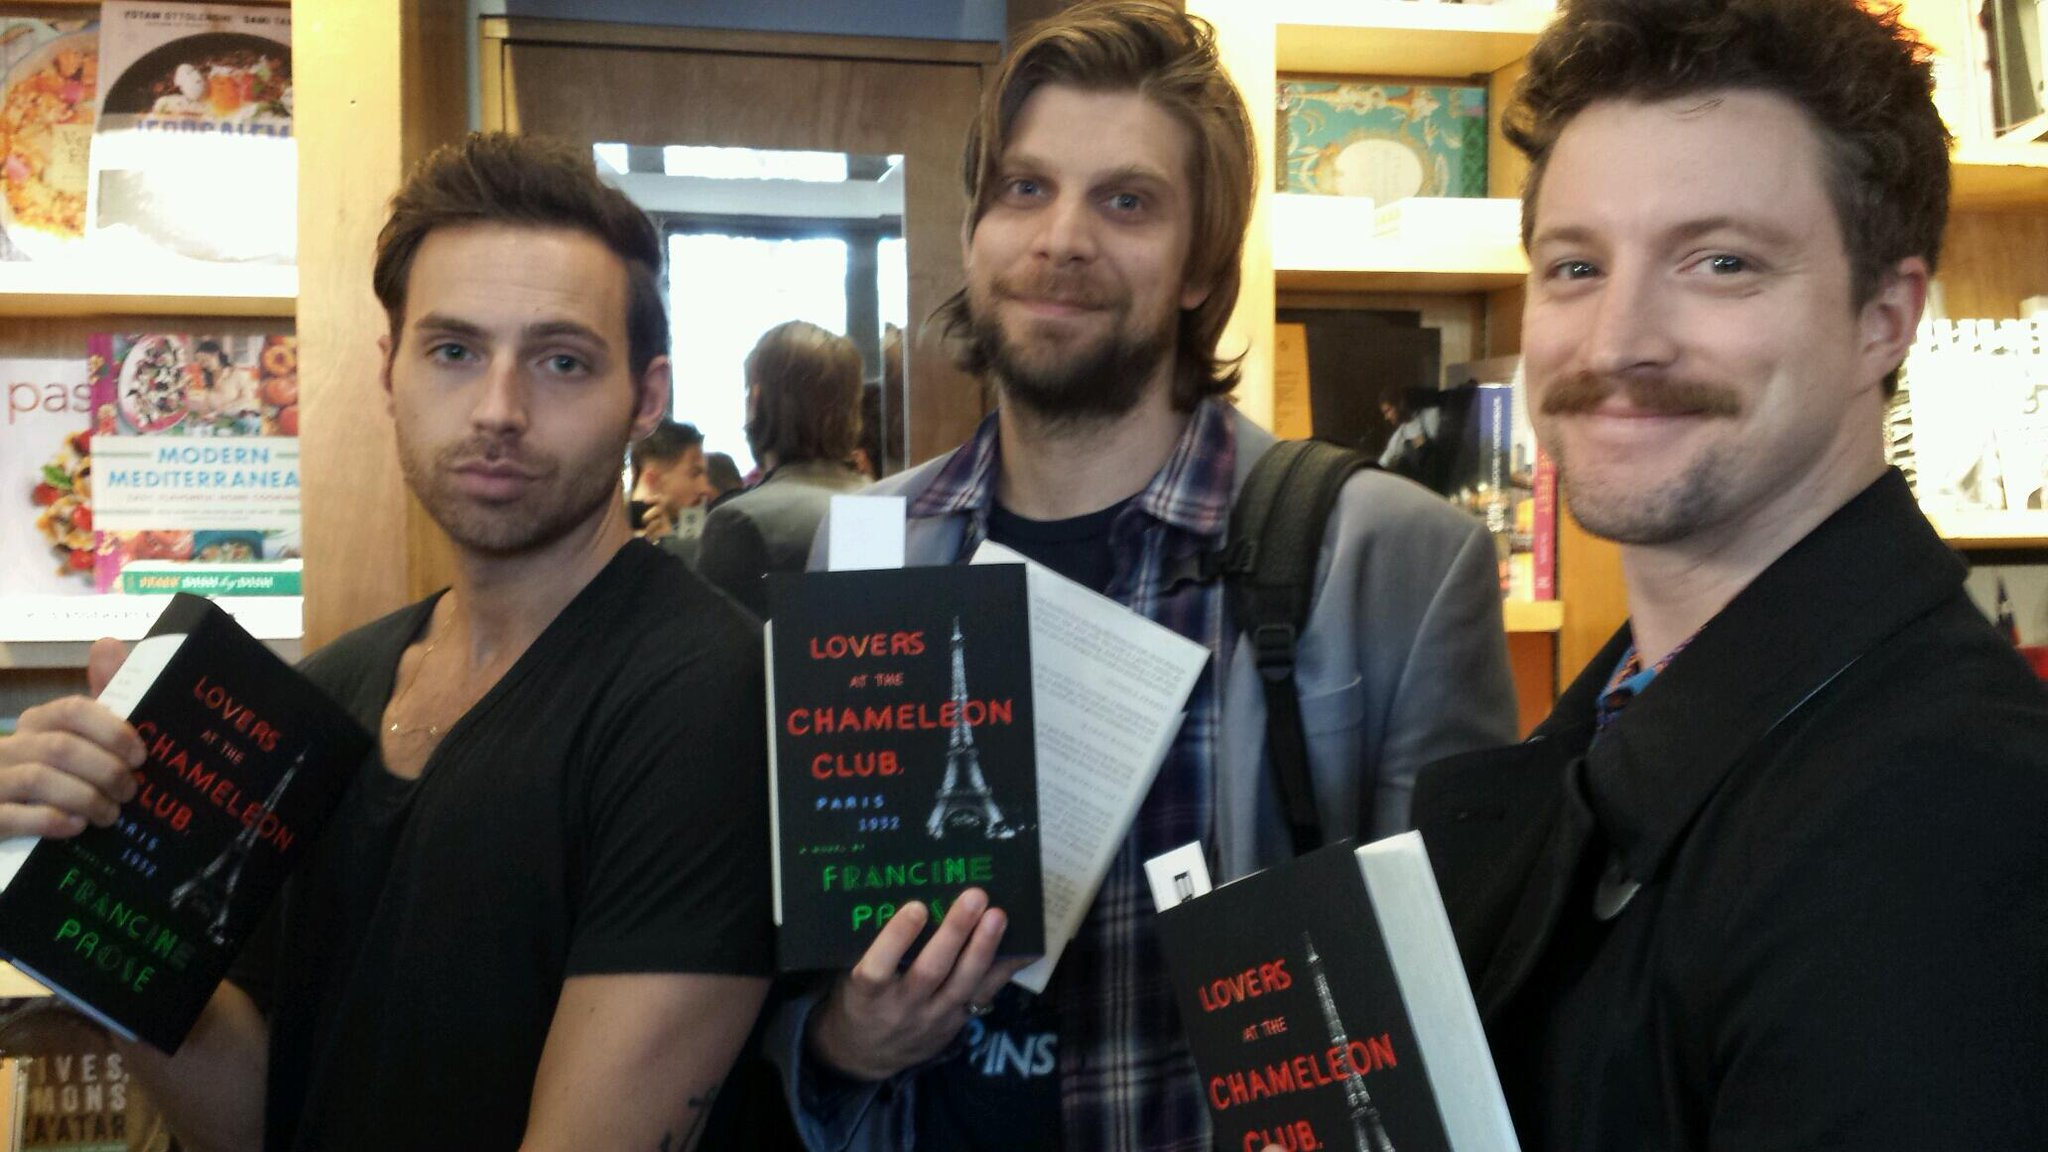 Hunks are lining up to get their books signed by @FrancineProse. Stop by #Bookmarc NY & say hi! http://t.co/ZyJ0irtjvG